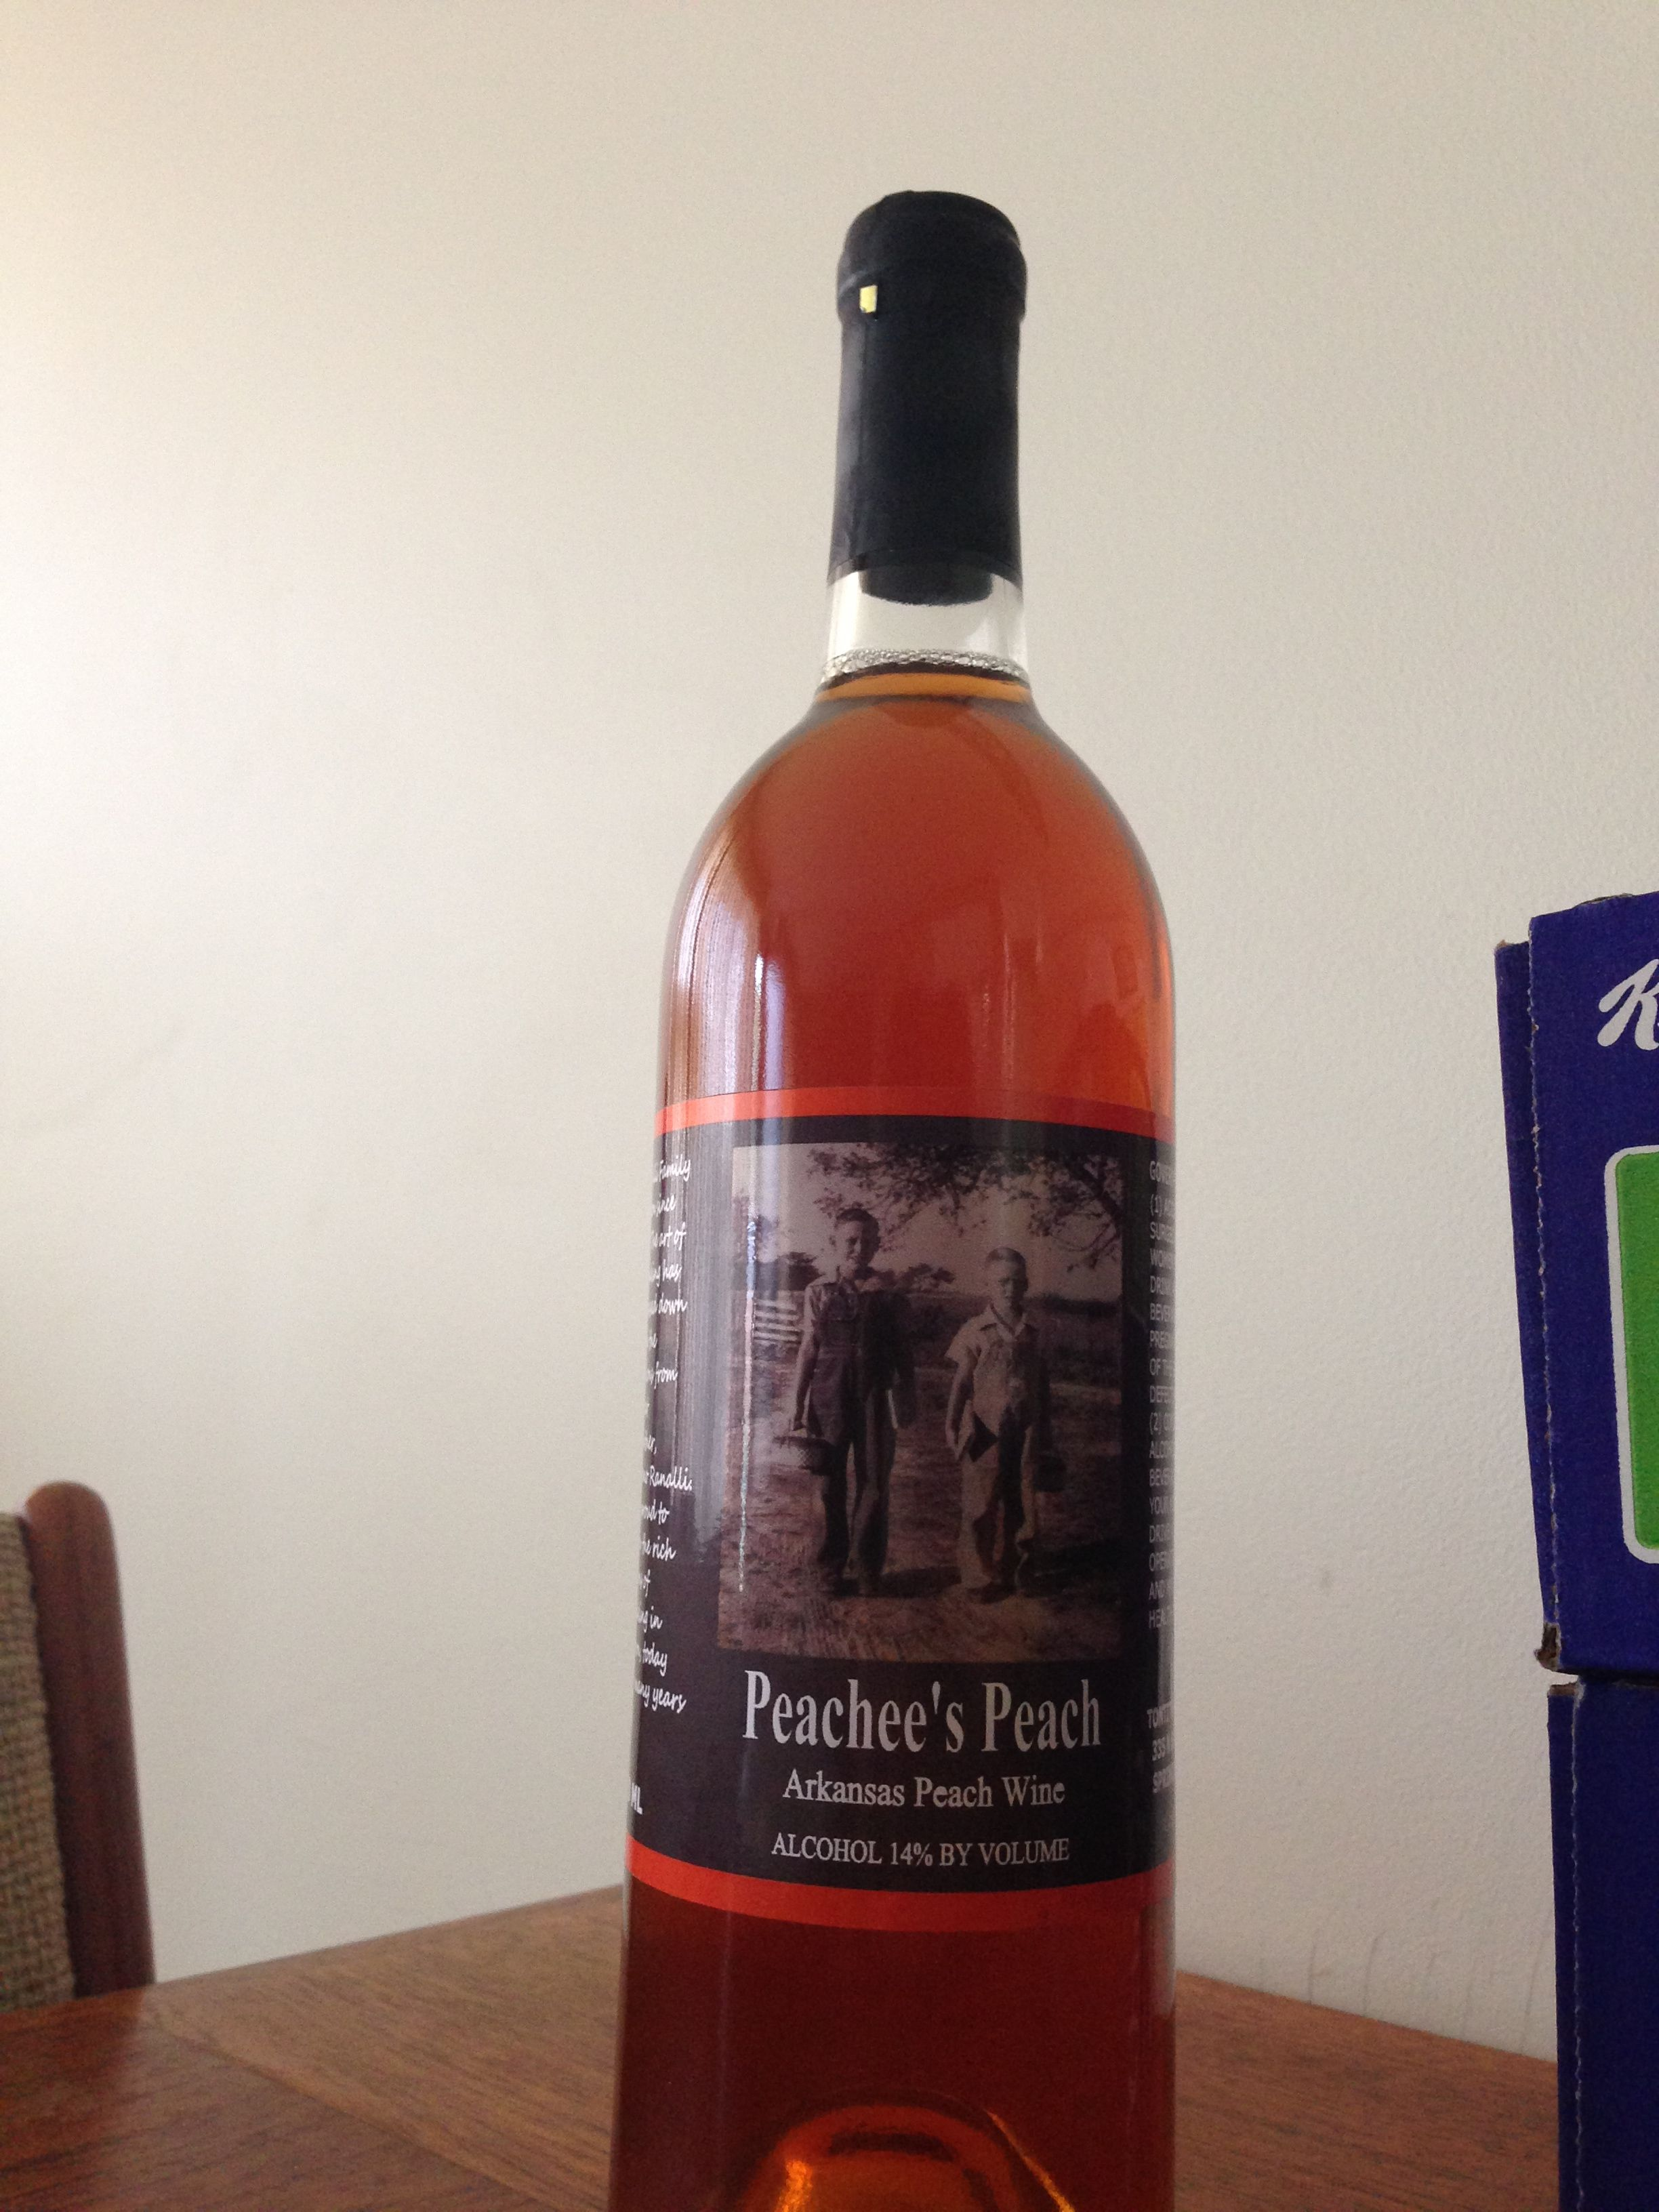 Tontitown Winery Peachee S Peach Great Summer Wine Great Winery Springdale Arkansas Peach Wine Wine Bottle Wine